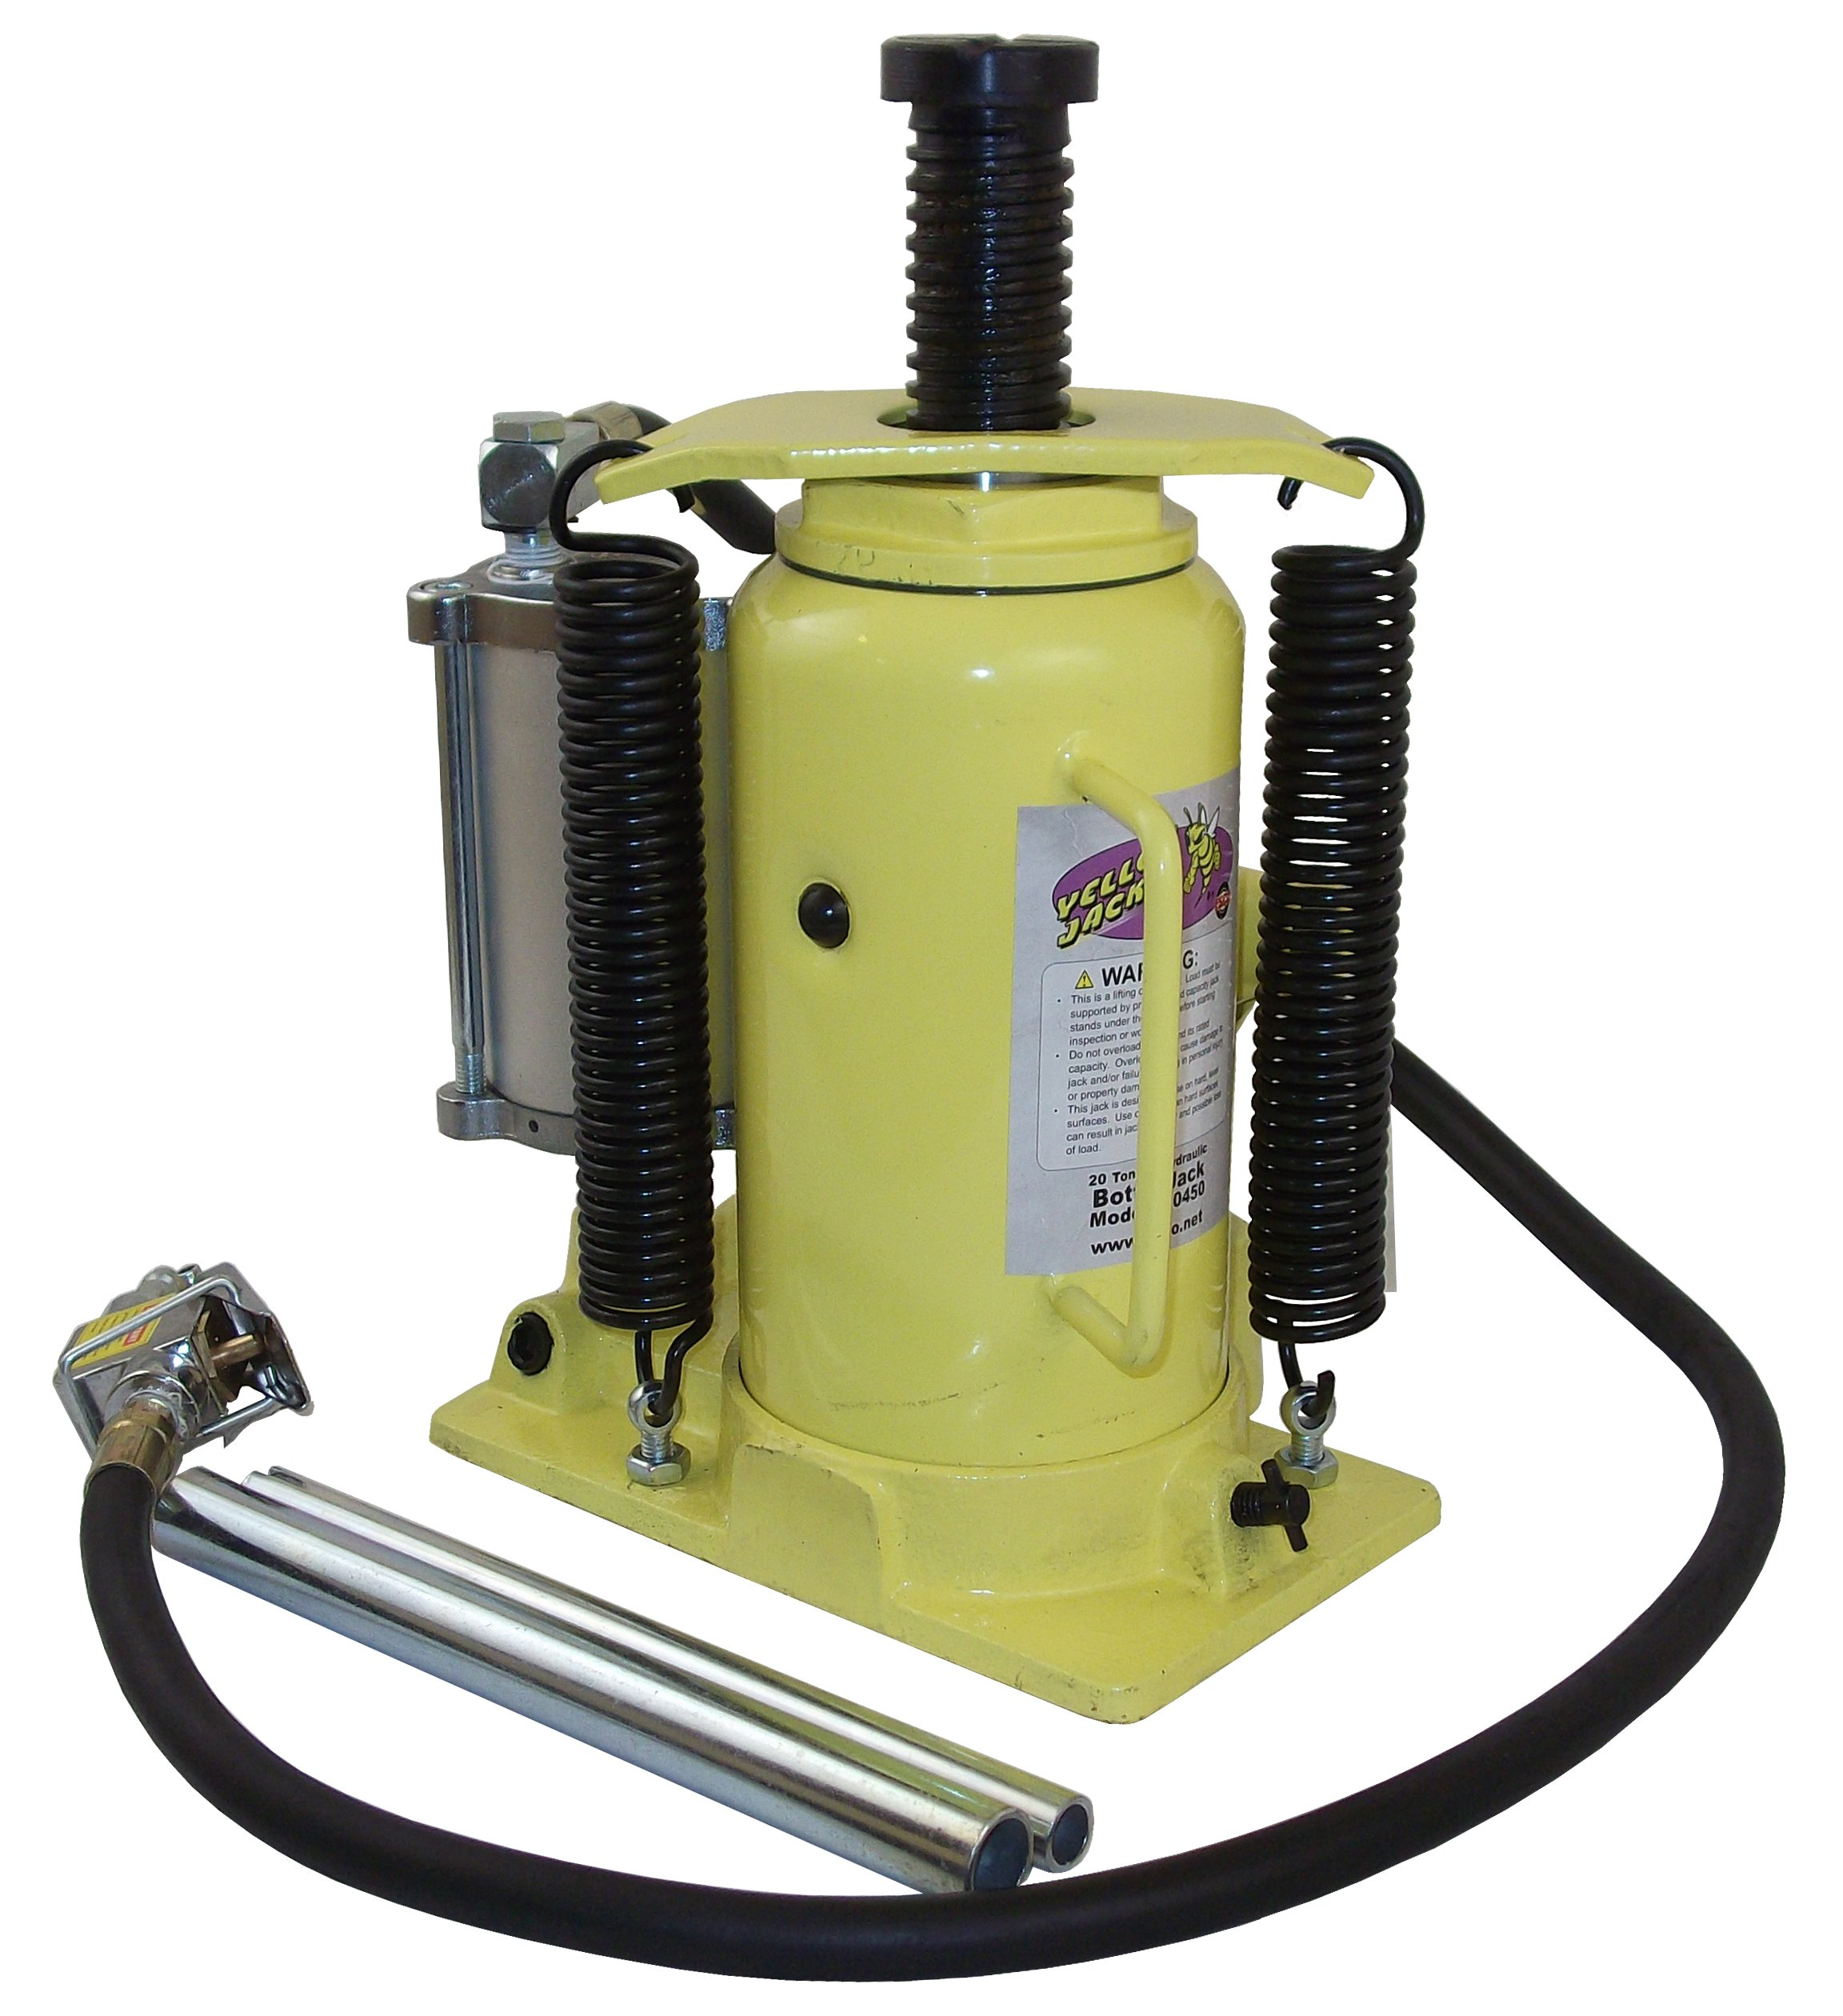 ESCO 10450 Yellow Jackit Air Hydraulic Air/Manual Bottle Jack, 20 Ton Capacity, 19.2 Inch Height 8 Inches Height